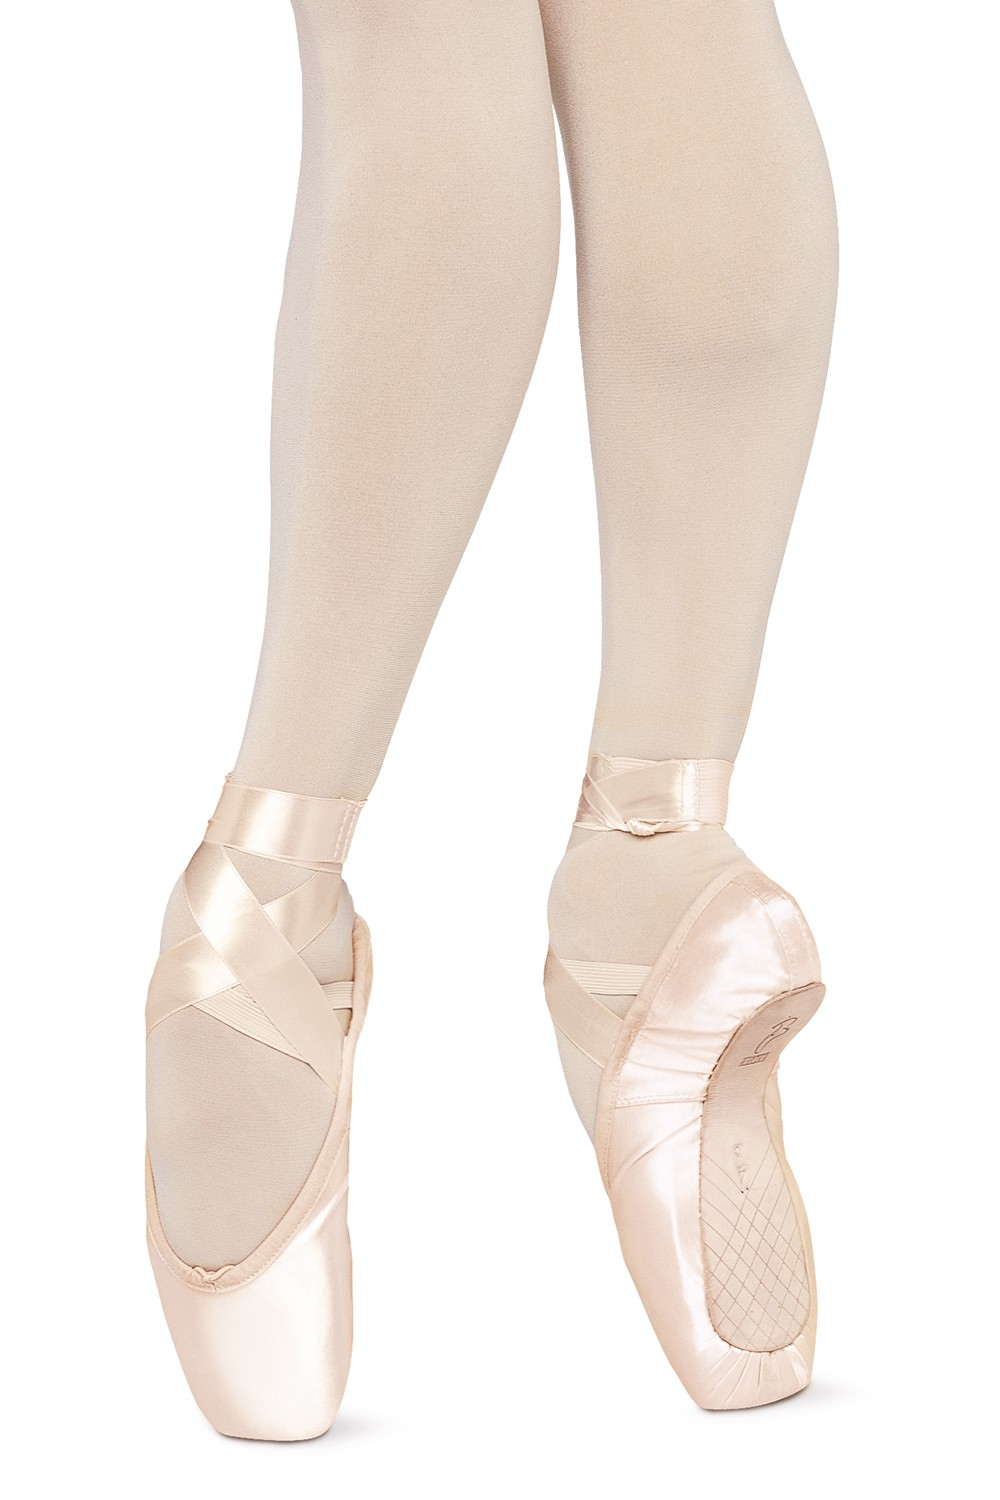 Sonata Mk Ii Pointe Shoes